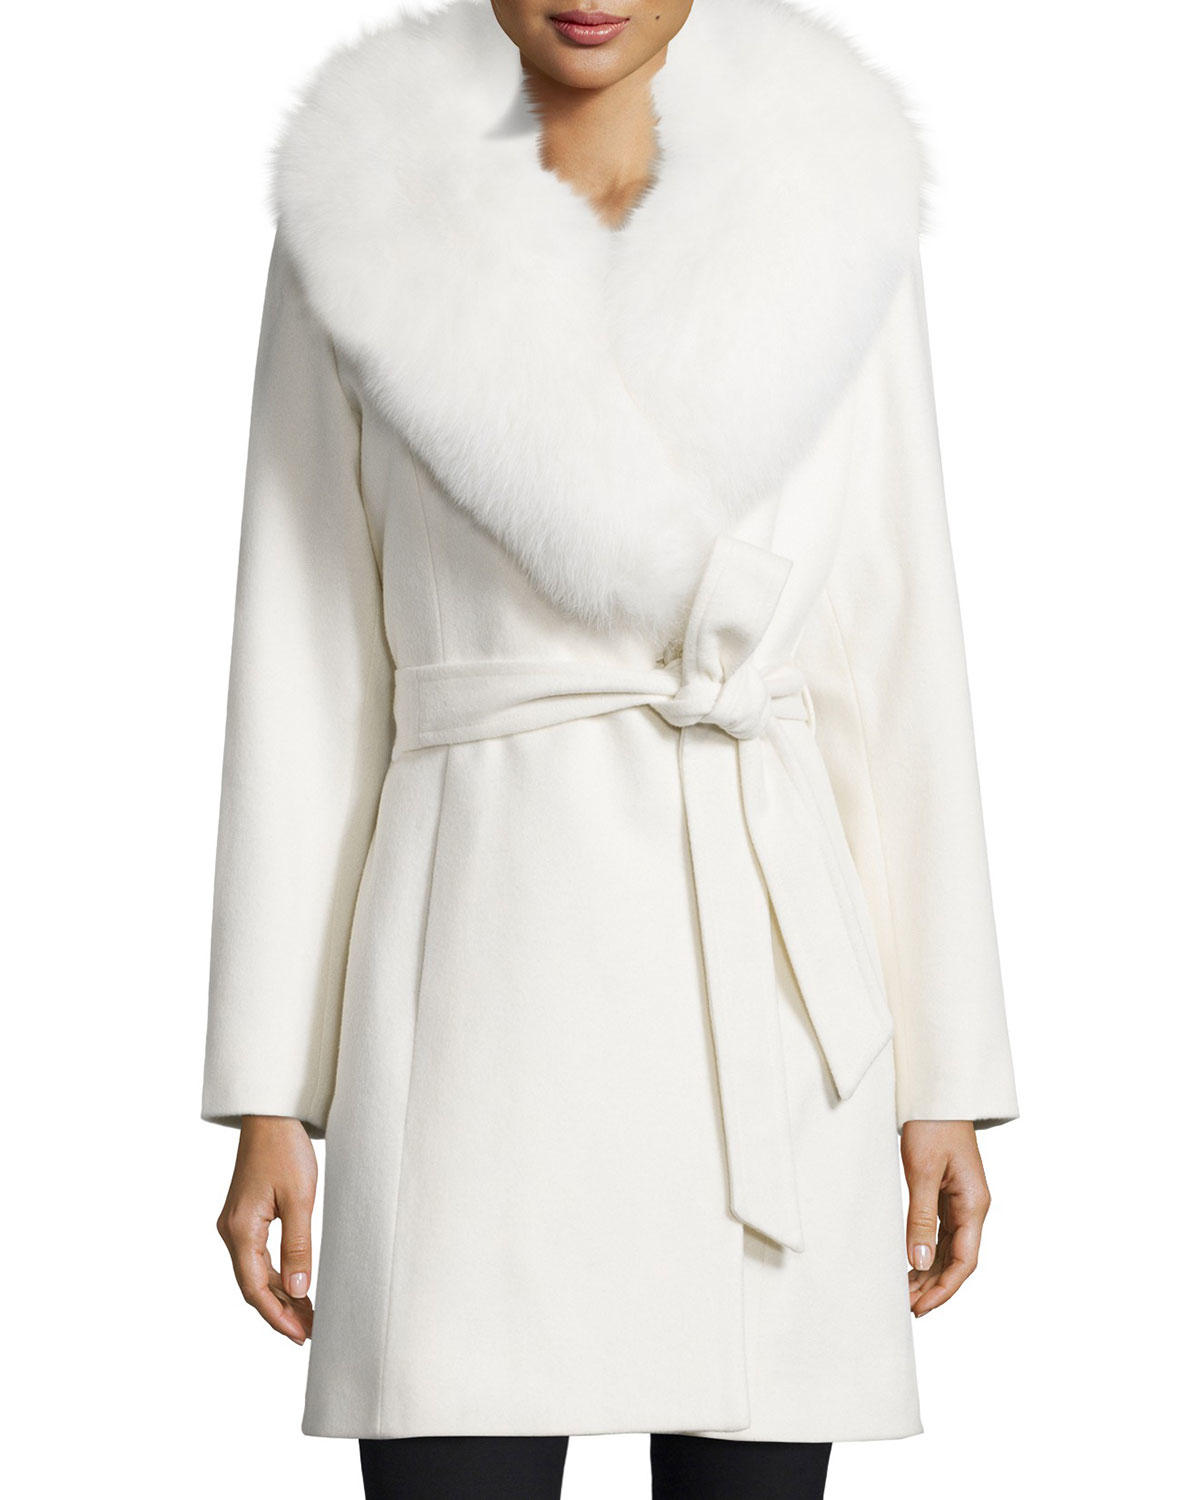 Sofia cashmere Ls Fox Fur Collar Short Wrap in White | Lyst